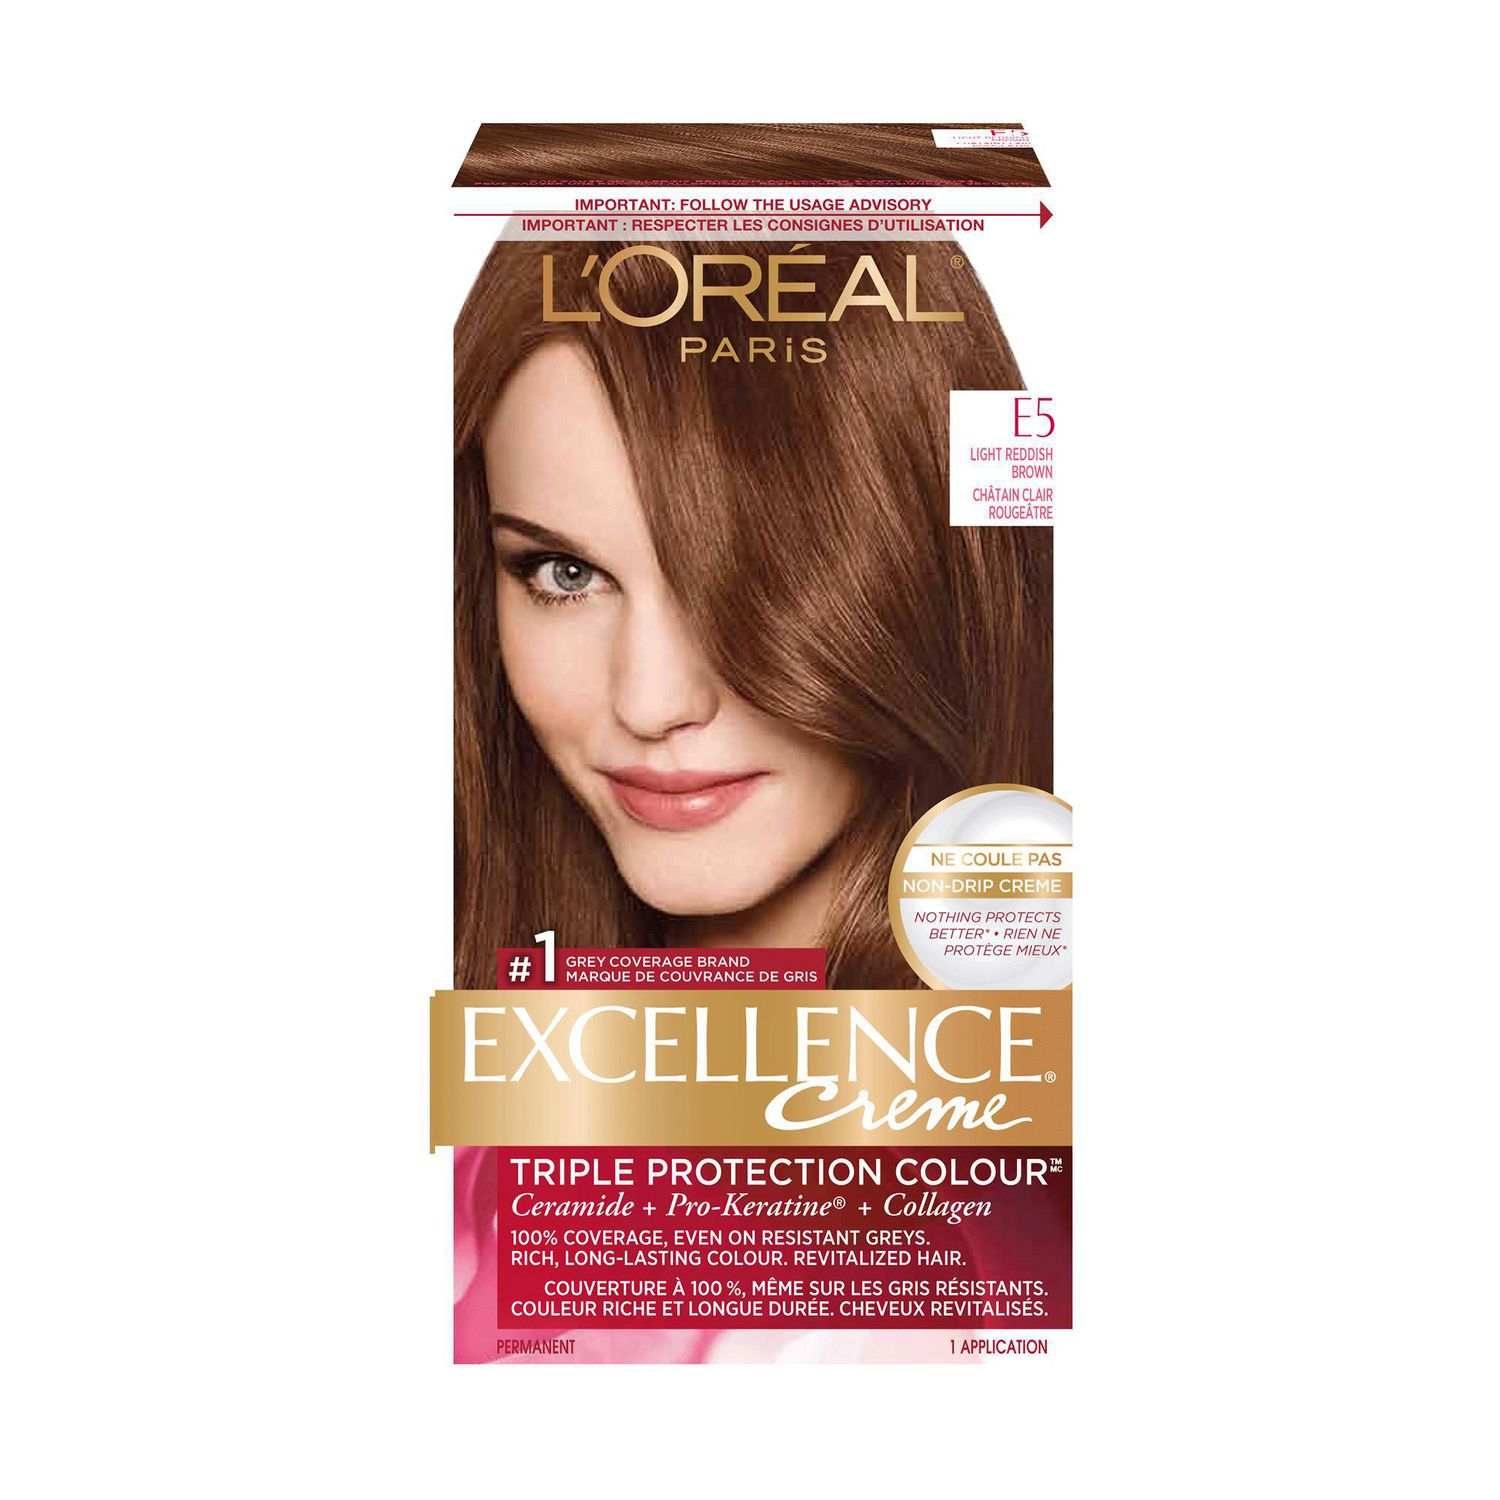 L'Oreal Paris Excellence Crème Triple Protection Colour Permanent ...